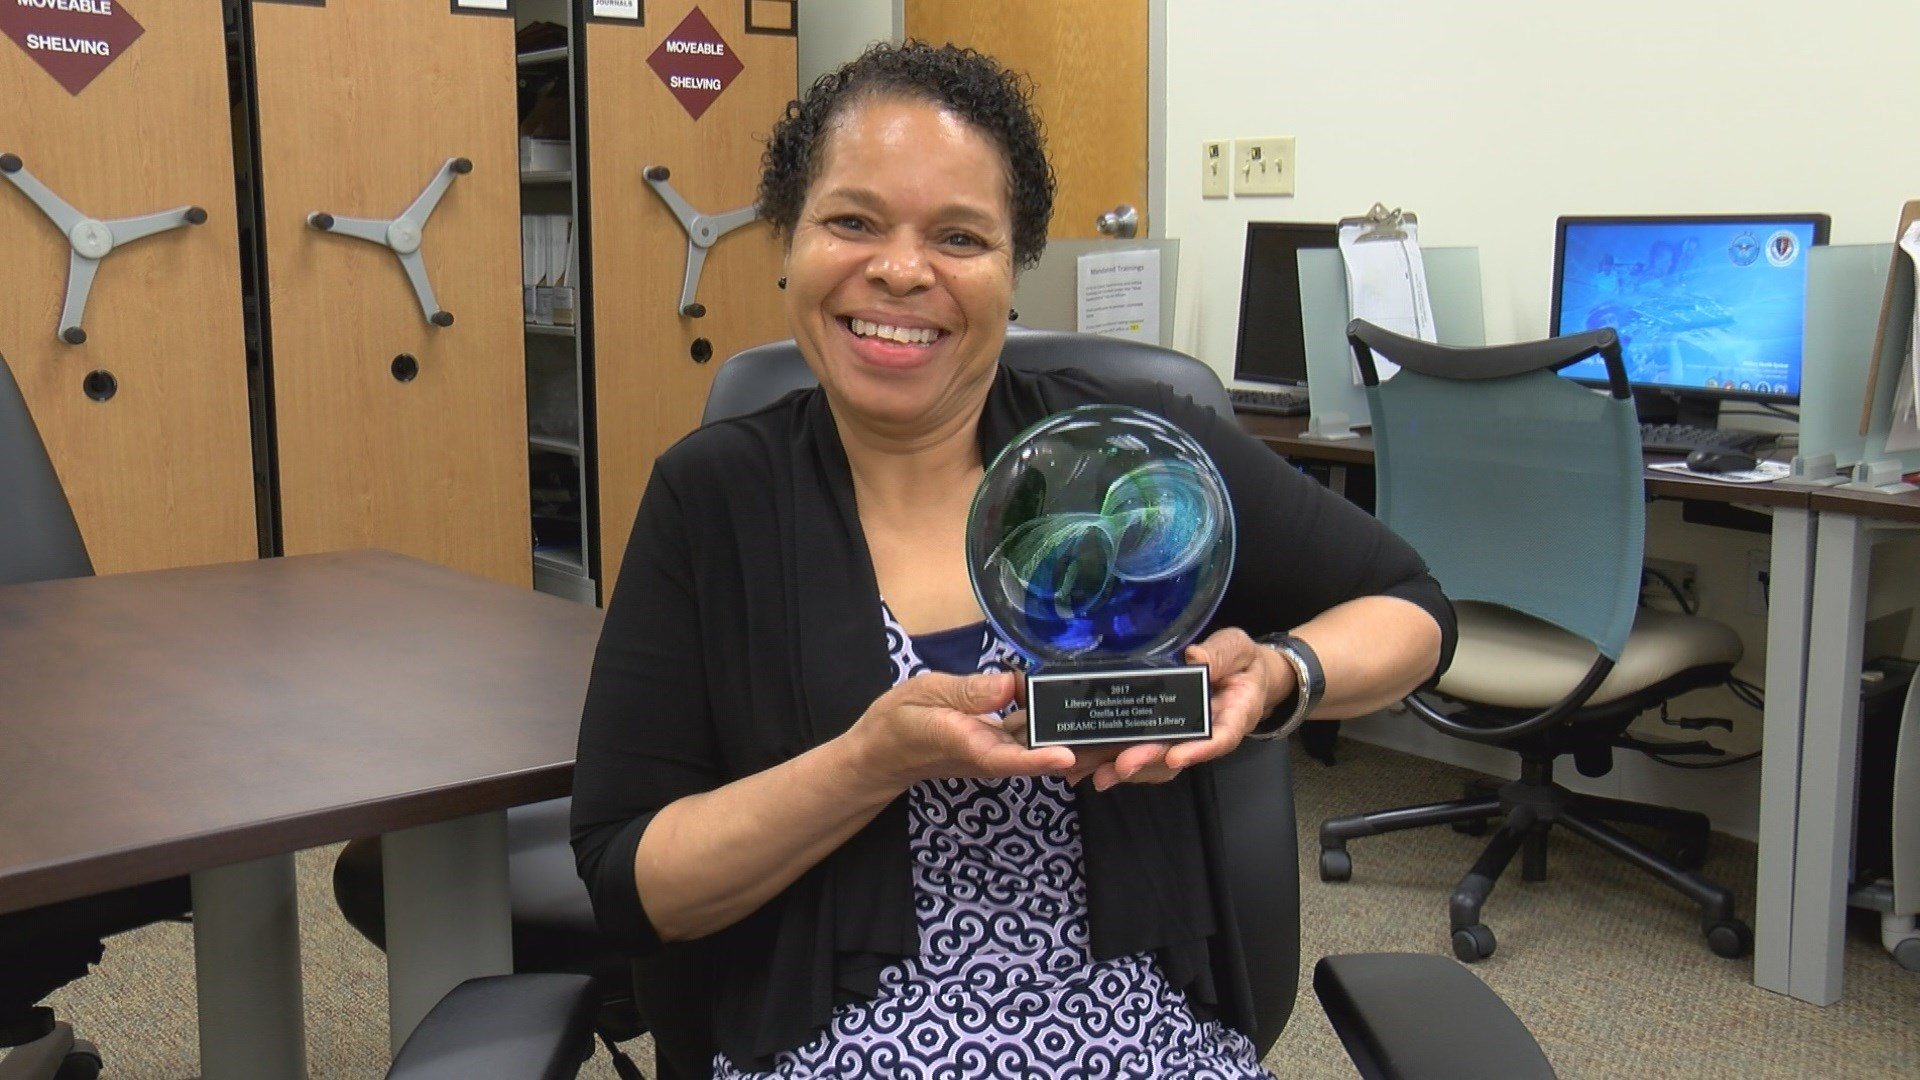 Ozella Gates, 2017 Library Technician of the Year (WFXG)